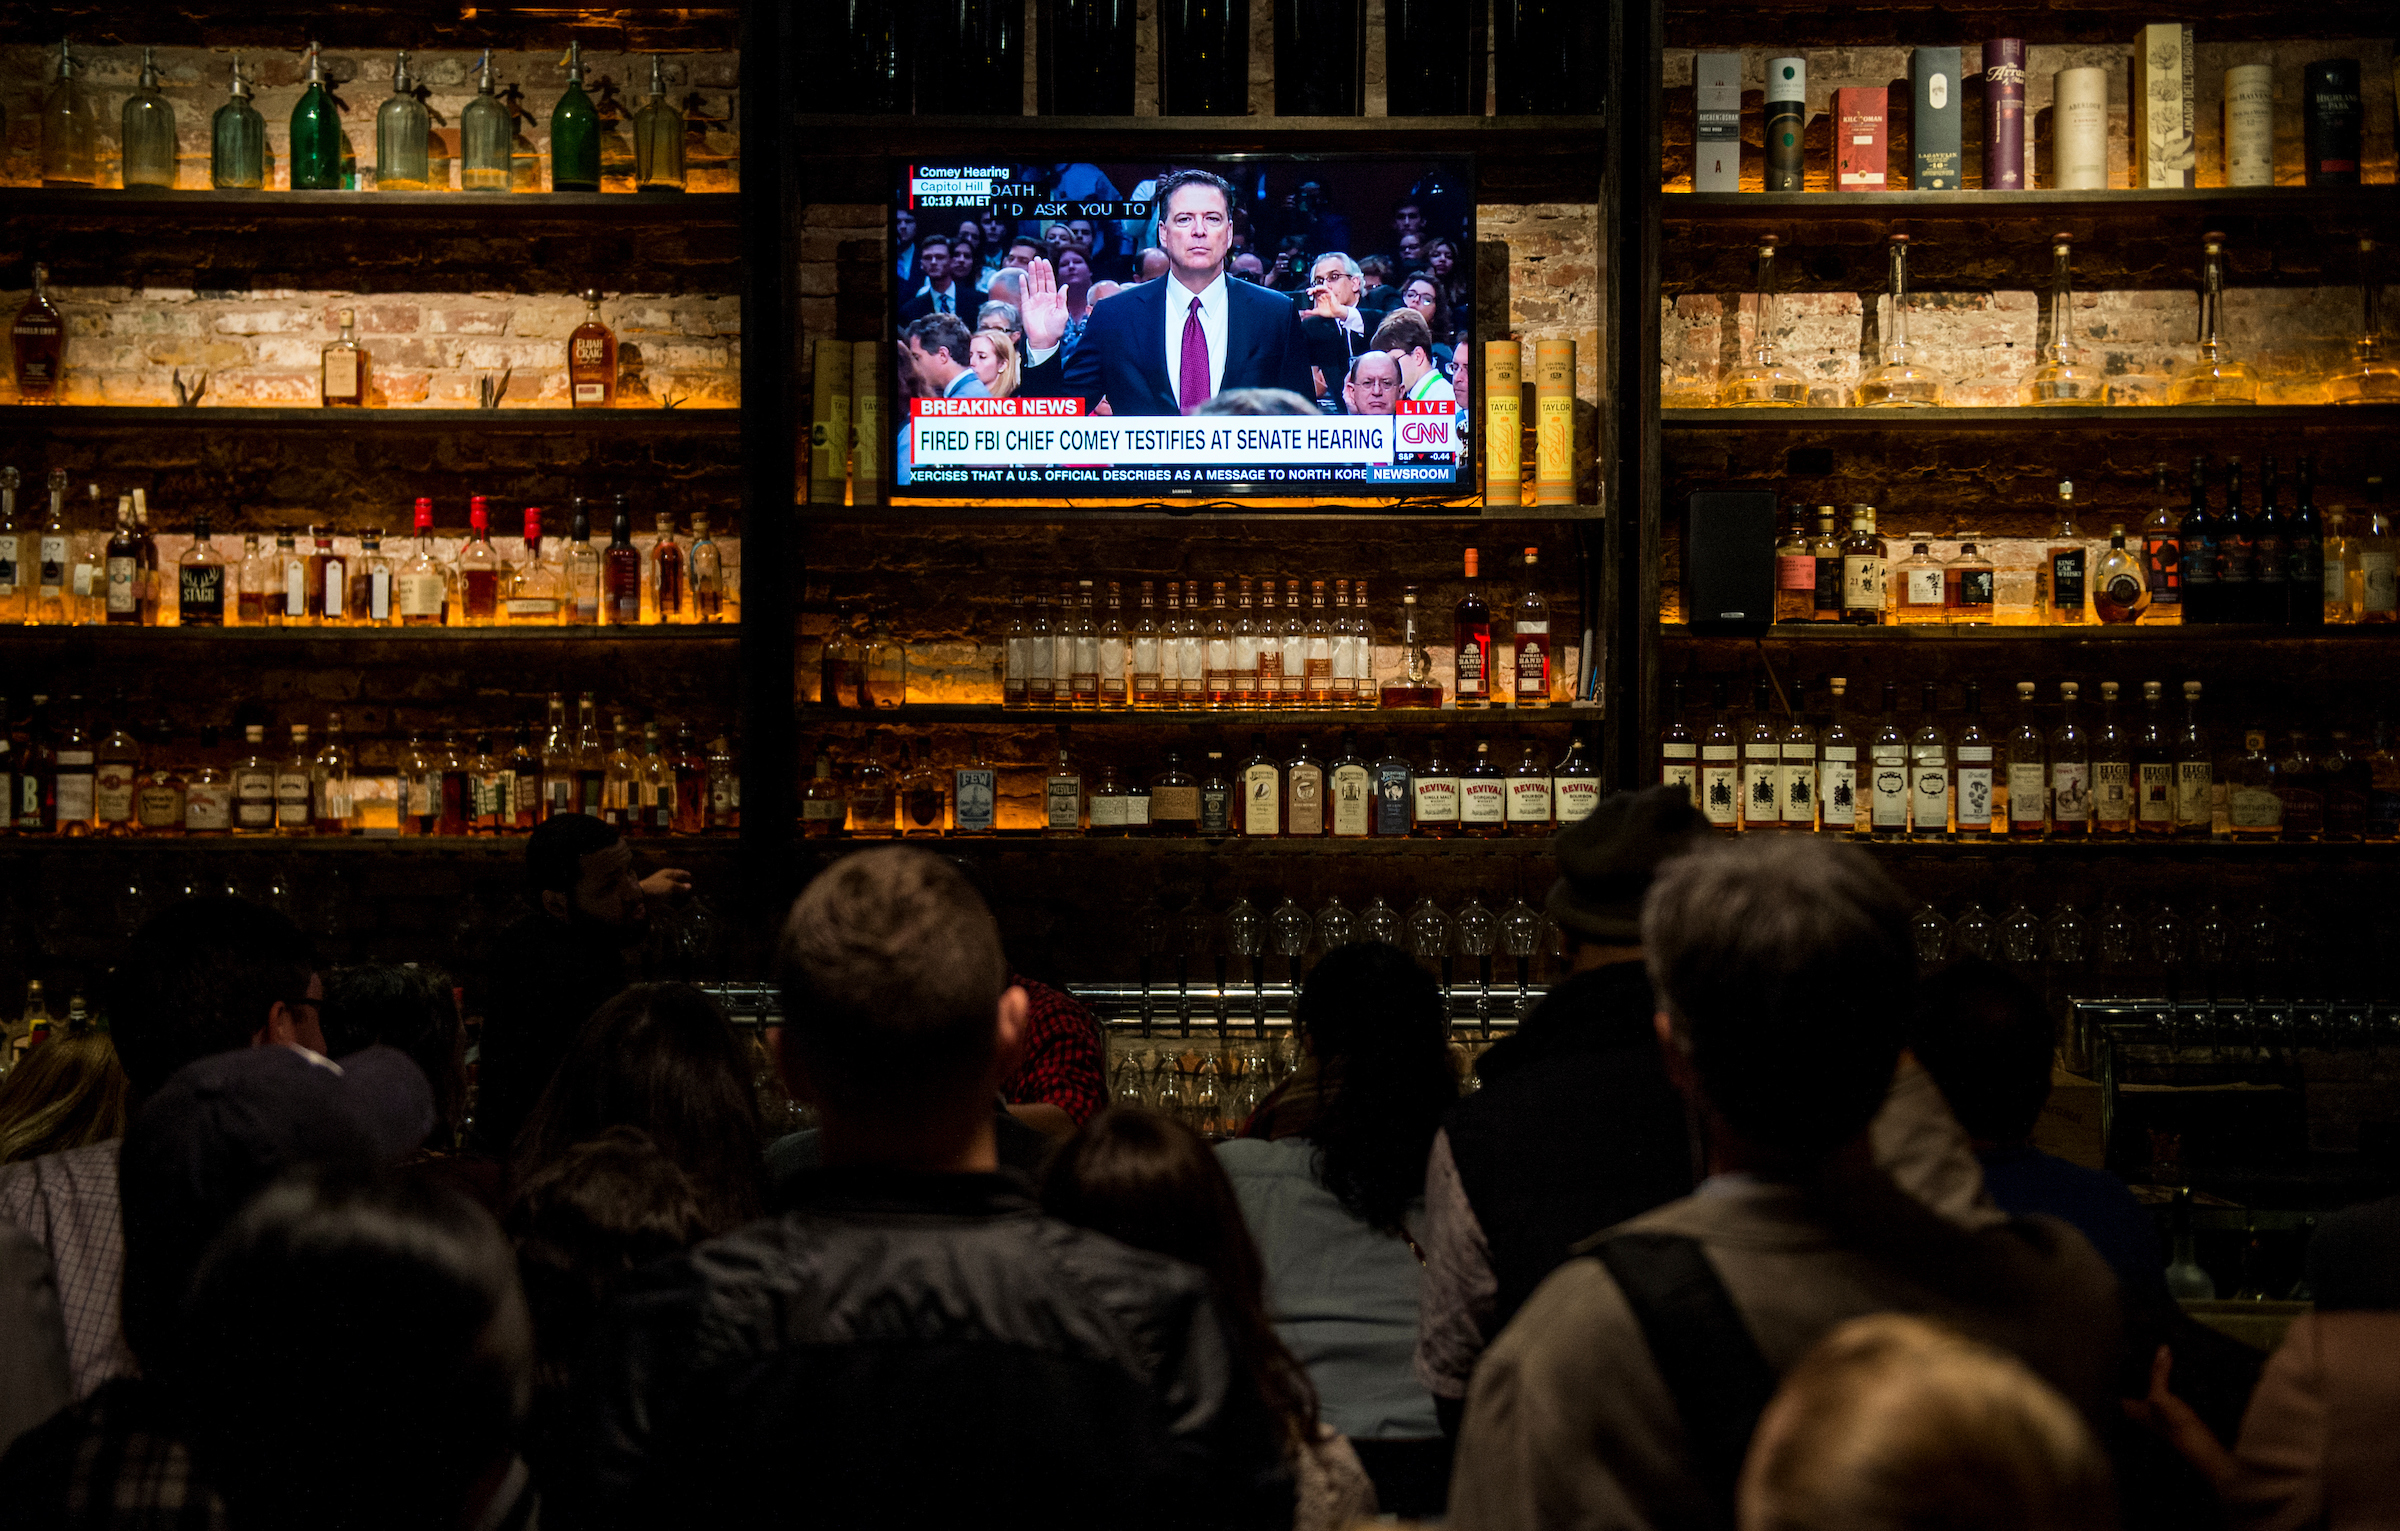 The crowd gathered at The Partisan bar watch as former FBI Director James B. Comey arrives to testify during the Senate Select Intelligence Committee hearing on Thursday. (Bill Clark/CQ Roll Call)